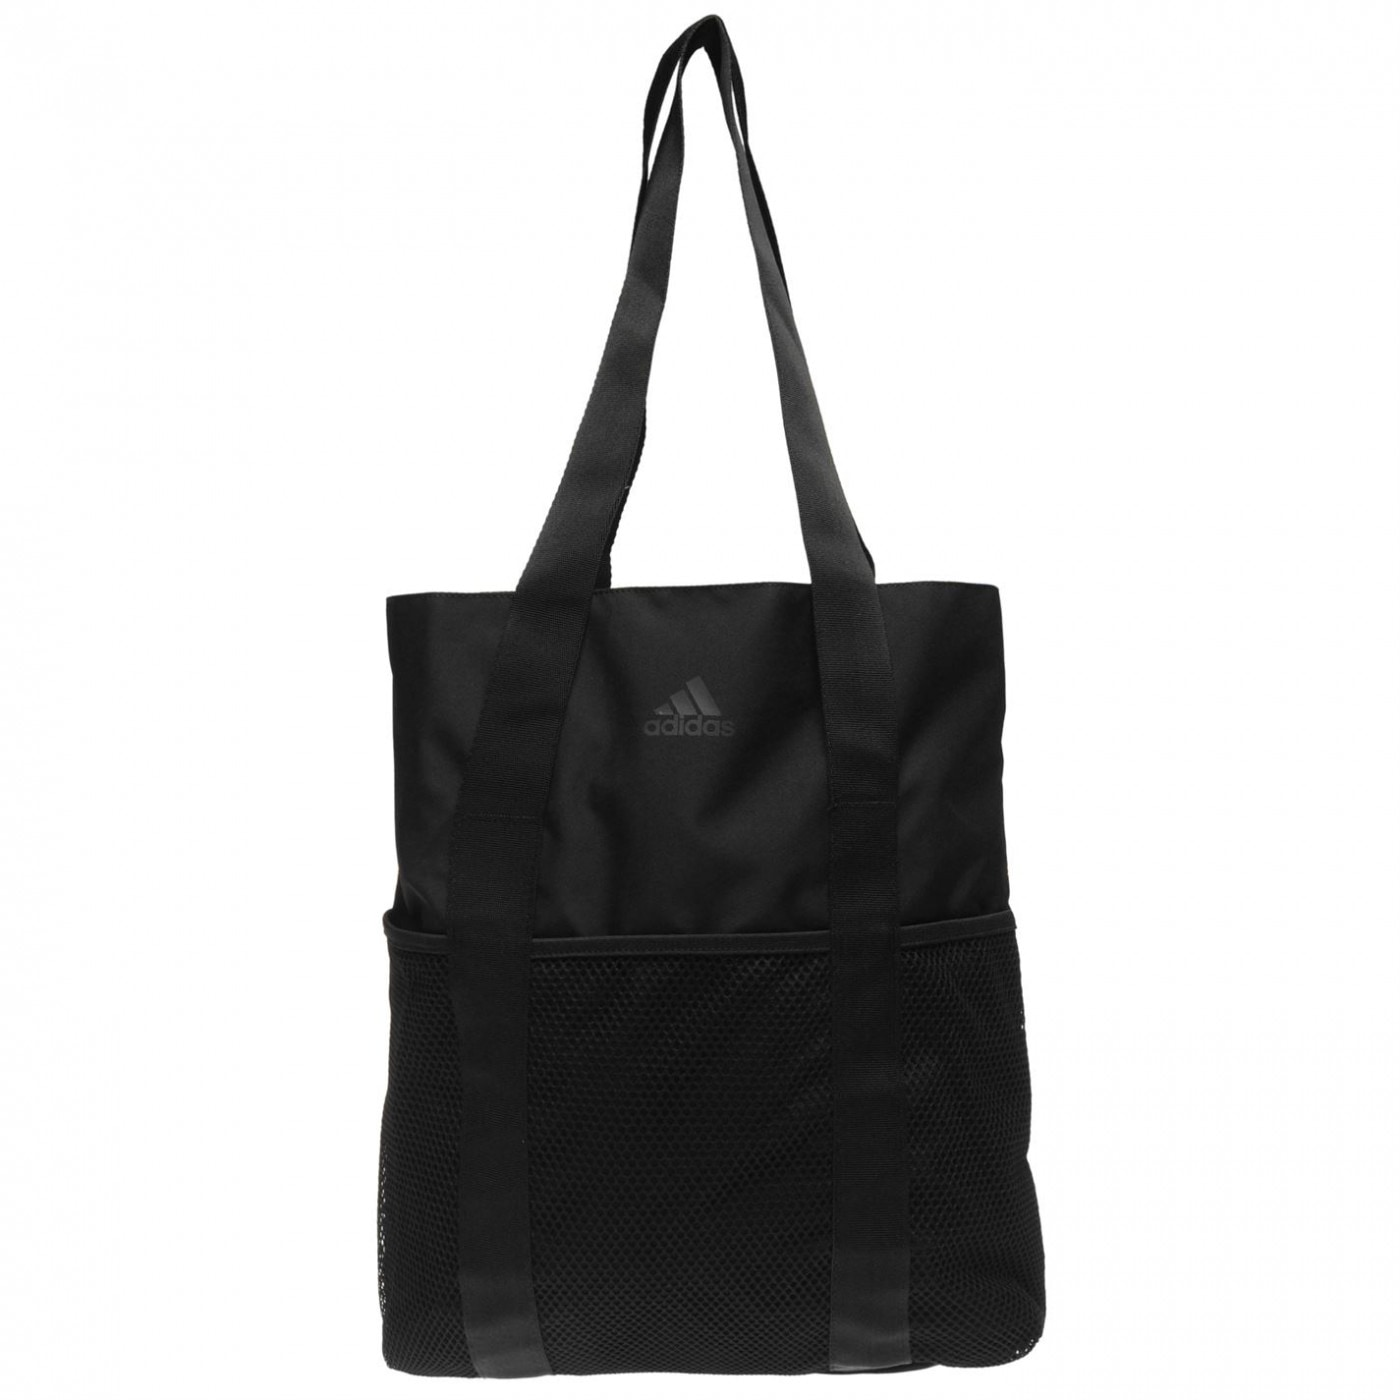 Adidas Shopper Bag Ladies